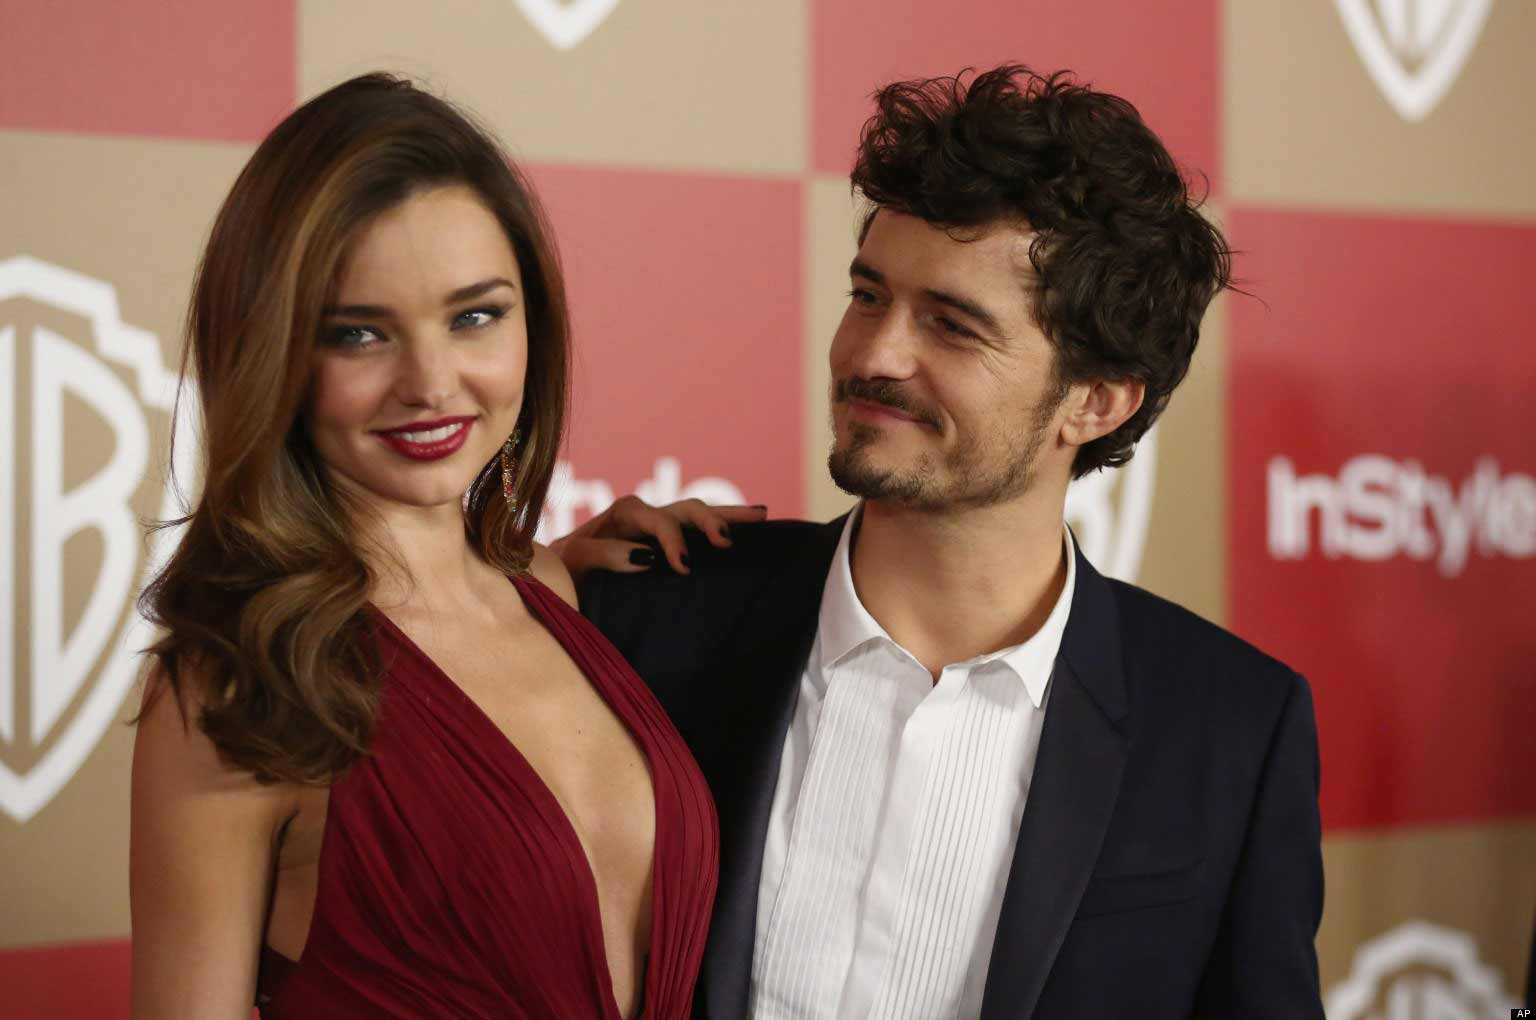 miranda-kerr-and-orlando-bloom-relationship-split (7)-red-carpet-golden-globes-2013